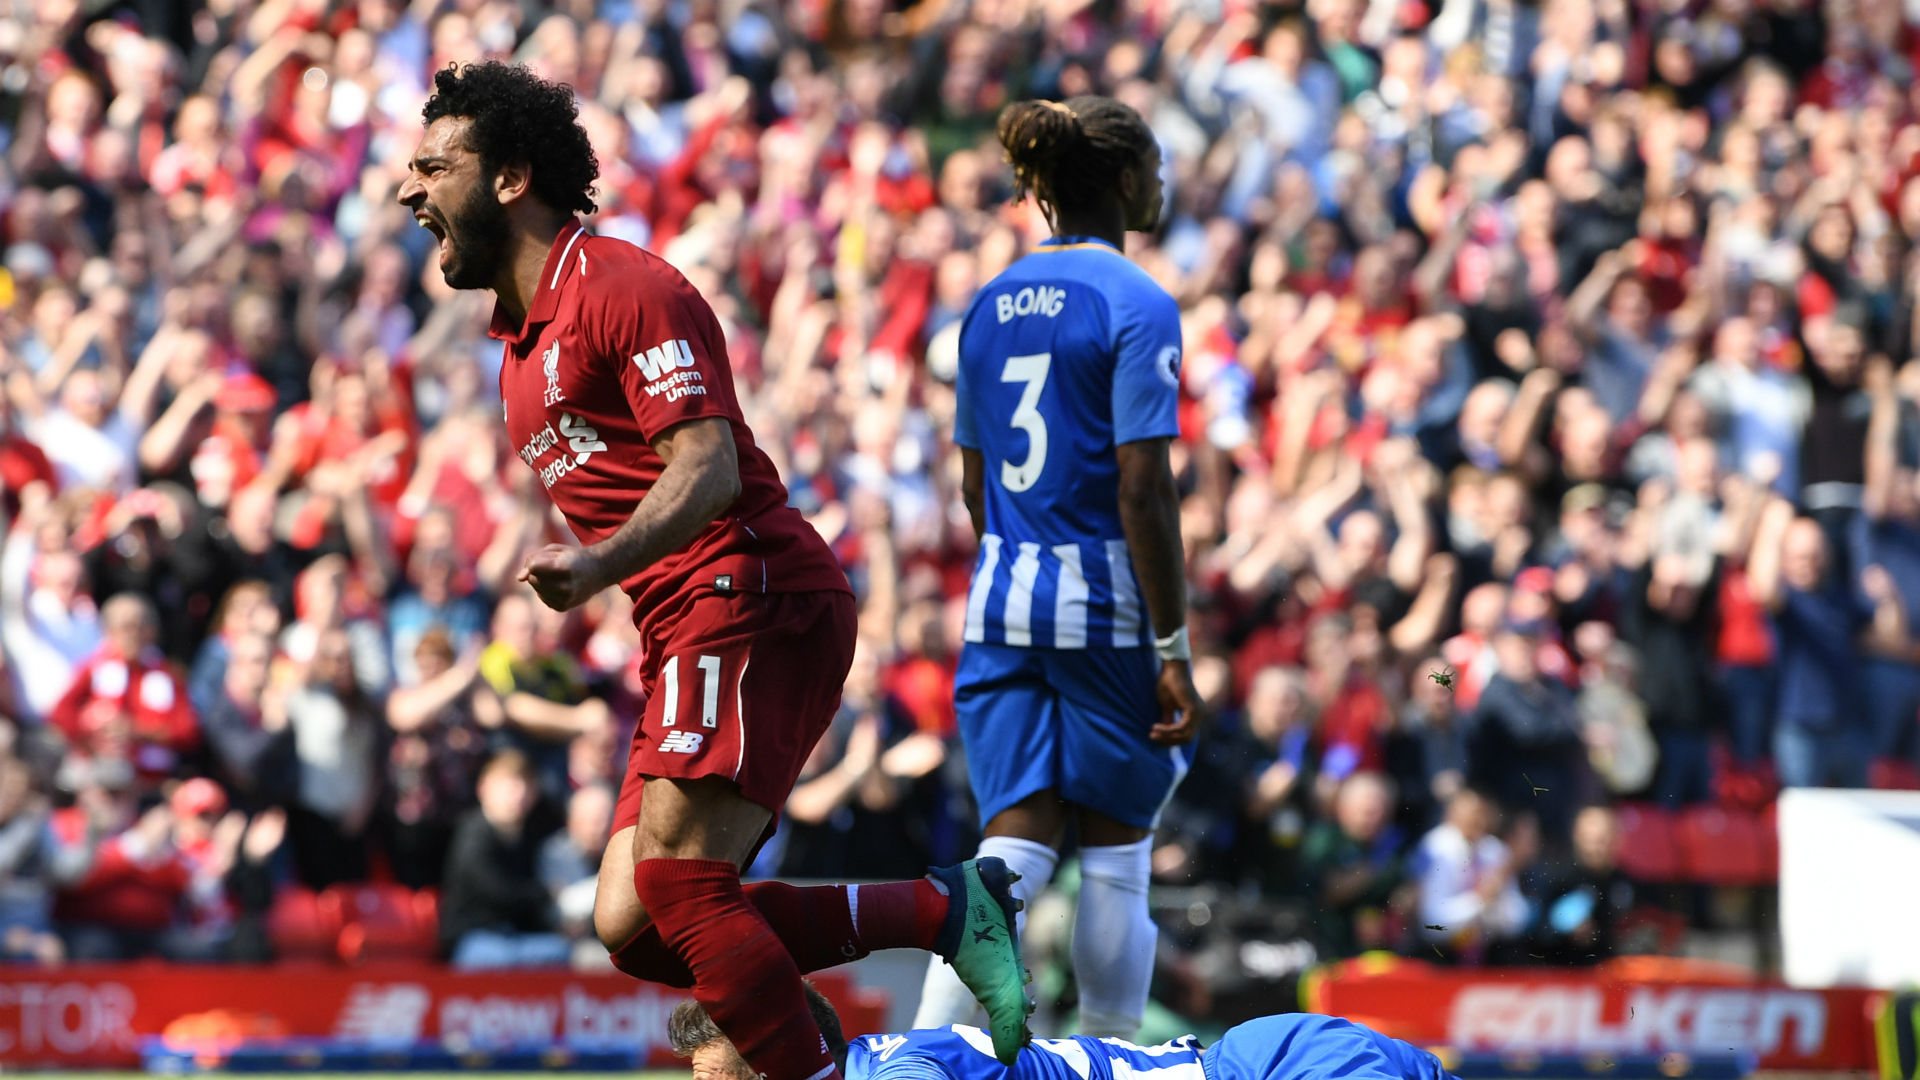 Kane challenges Salah to another golden boot race in 2019